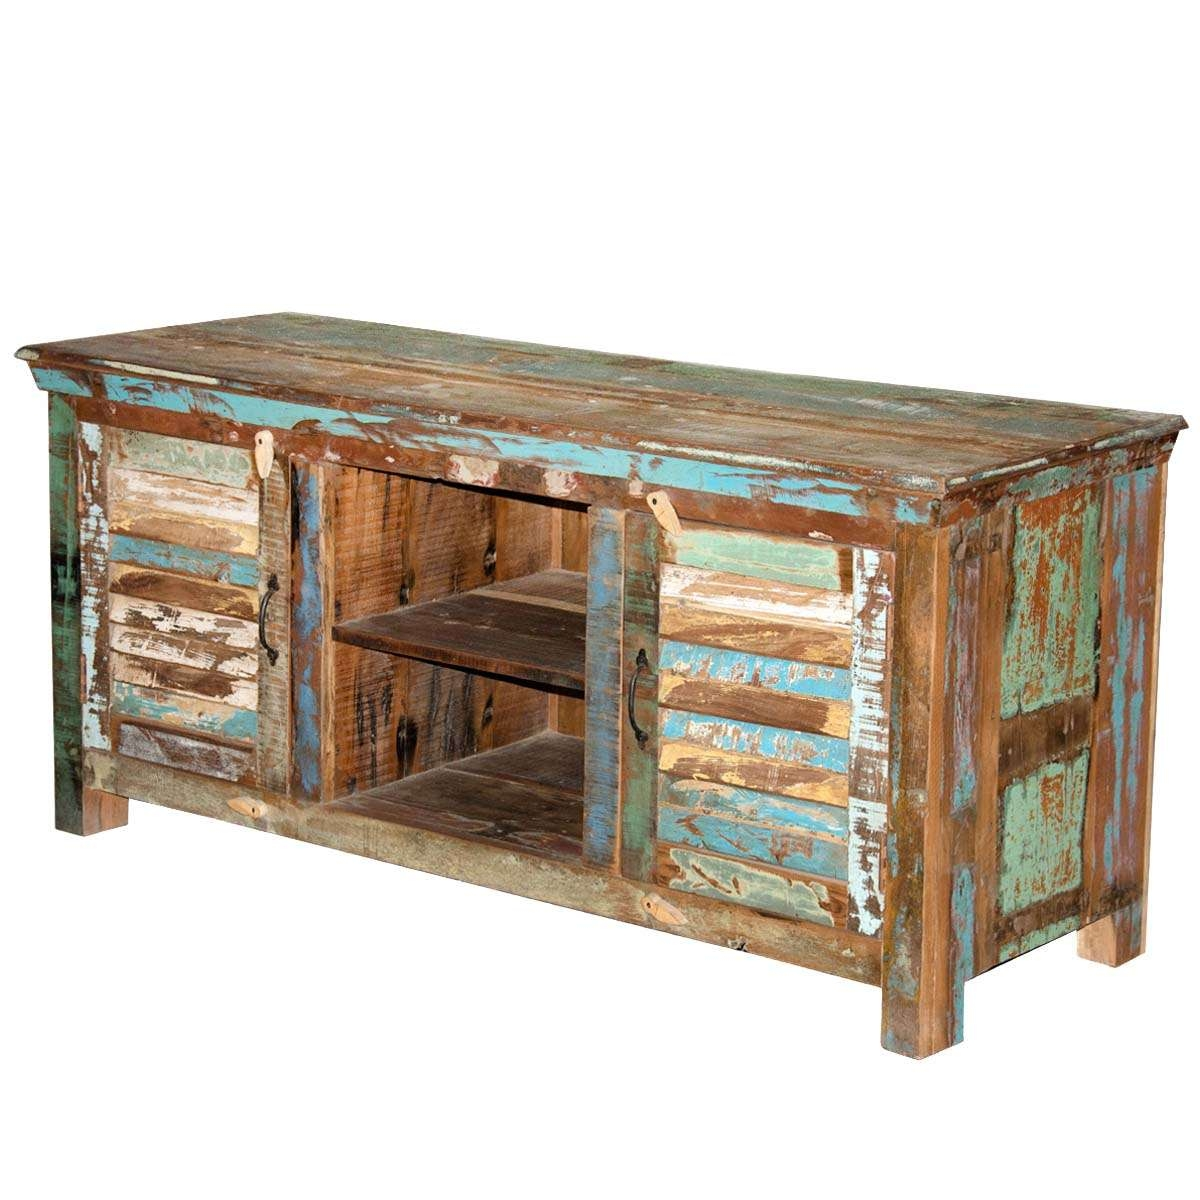 Rustic Shutter Doors Reclaimed Wood Tv Stand Media Console Regarding Wooden Tv Stands (View 9 of 15)